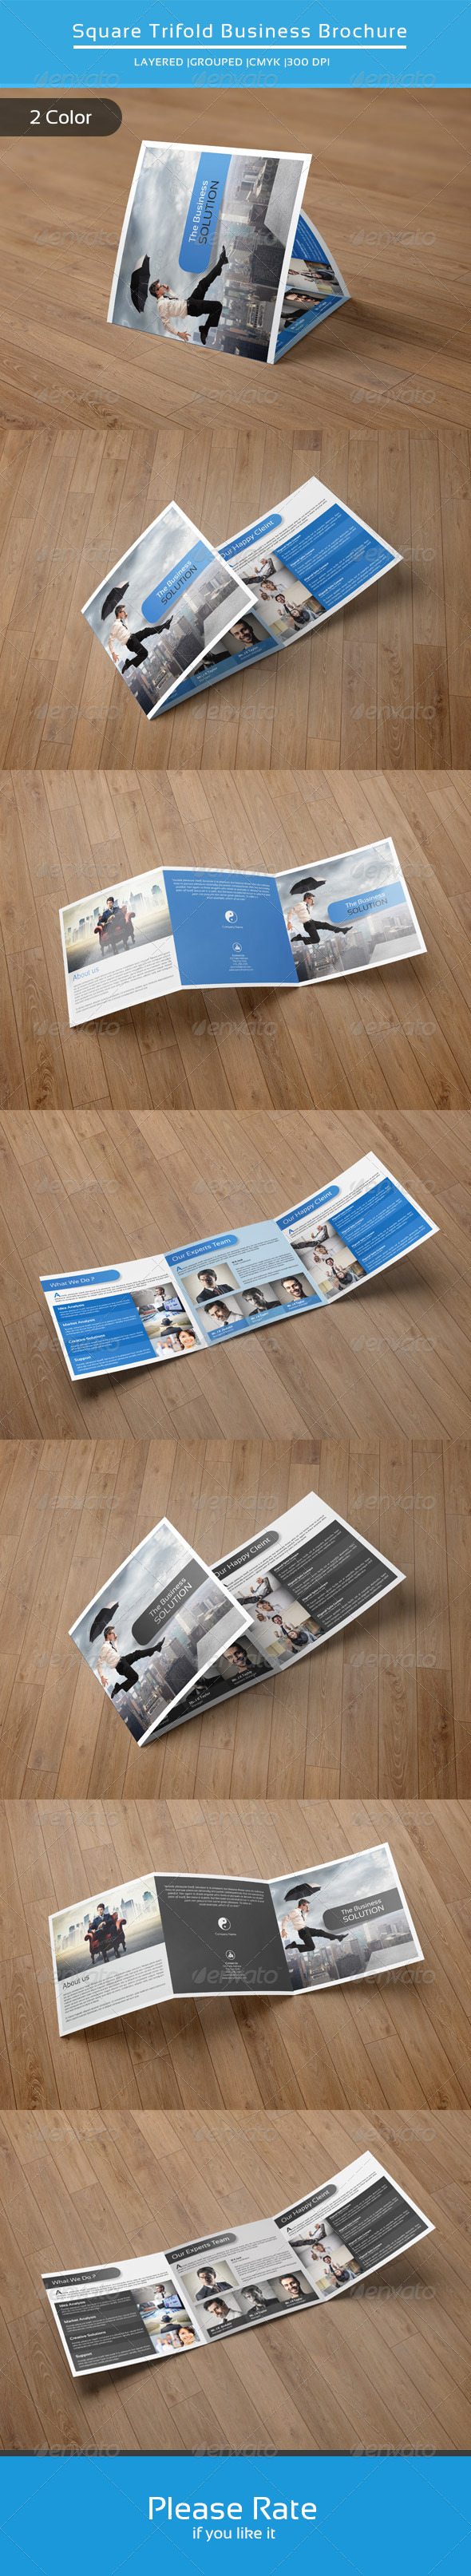 Square Trifold Business Brochure-V21